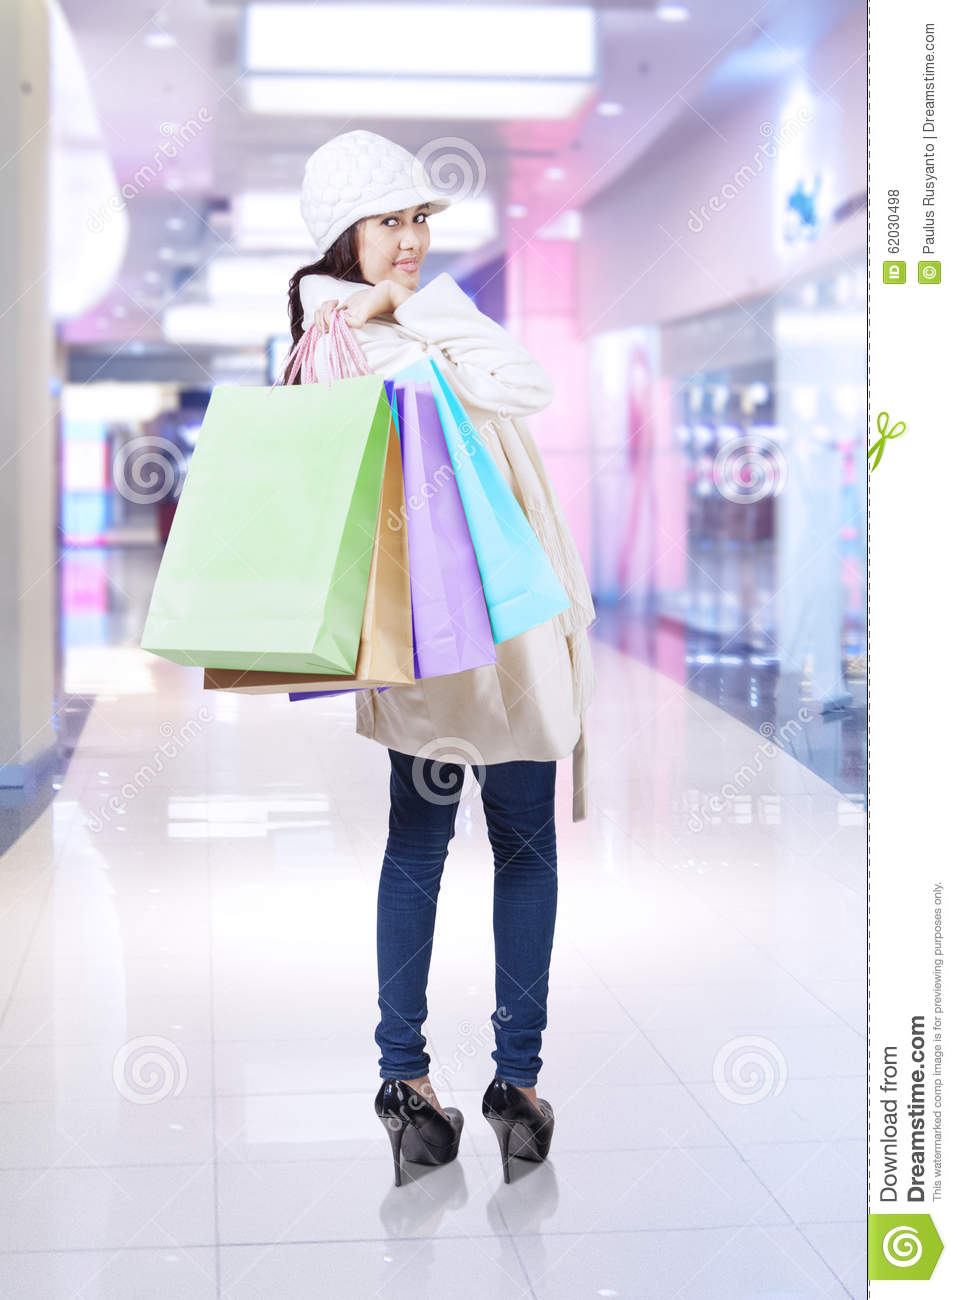 Excellent When You Buy Pads Or Tampons In Pakistan, Grocerystore Owners Doublebag The Purchases, Ostensibly So People On The Street Cant See What Lies Within Layers Of Brownpaper Bags This Culture Of Secrecy And Shame Around  To Show